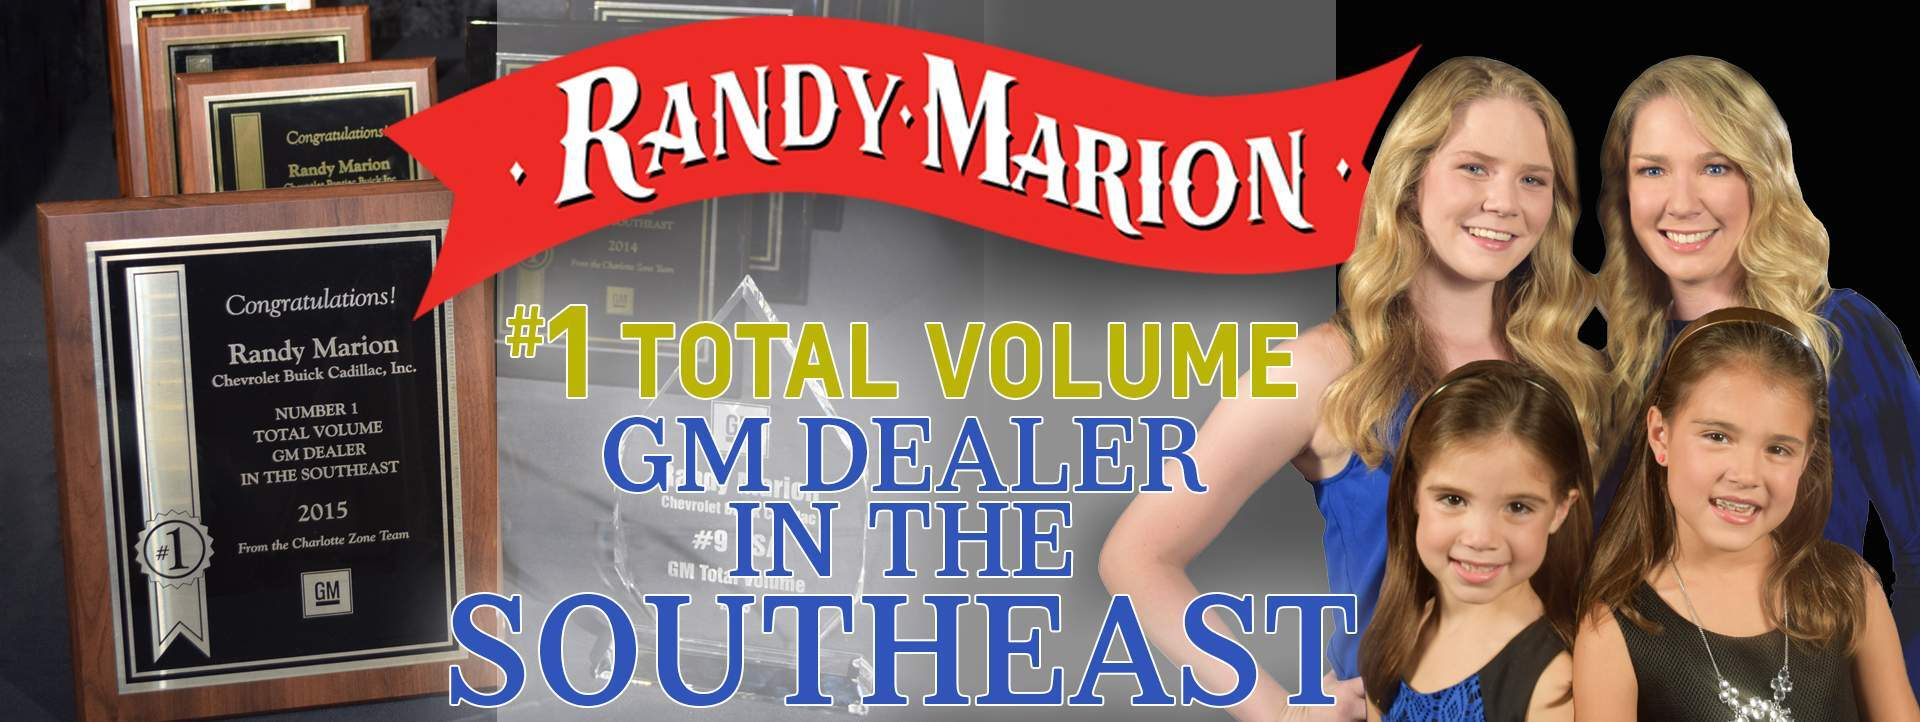 About Randy Marion Chevrolet Buick Cadillac